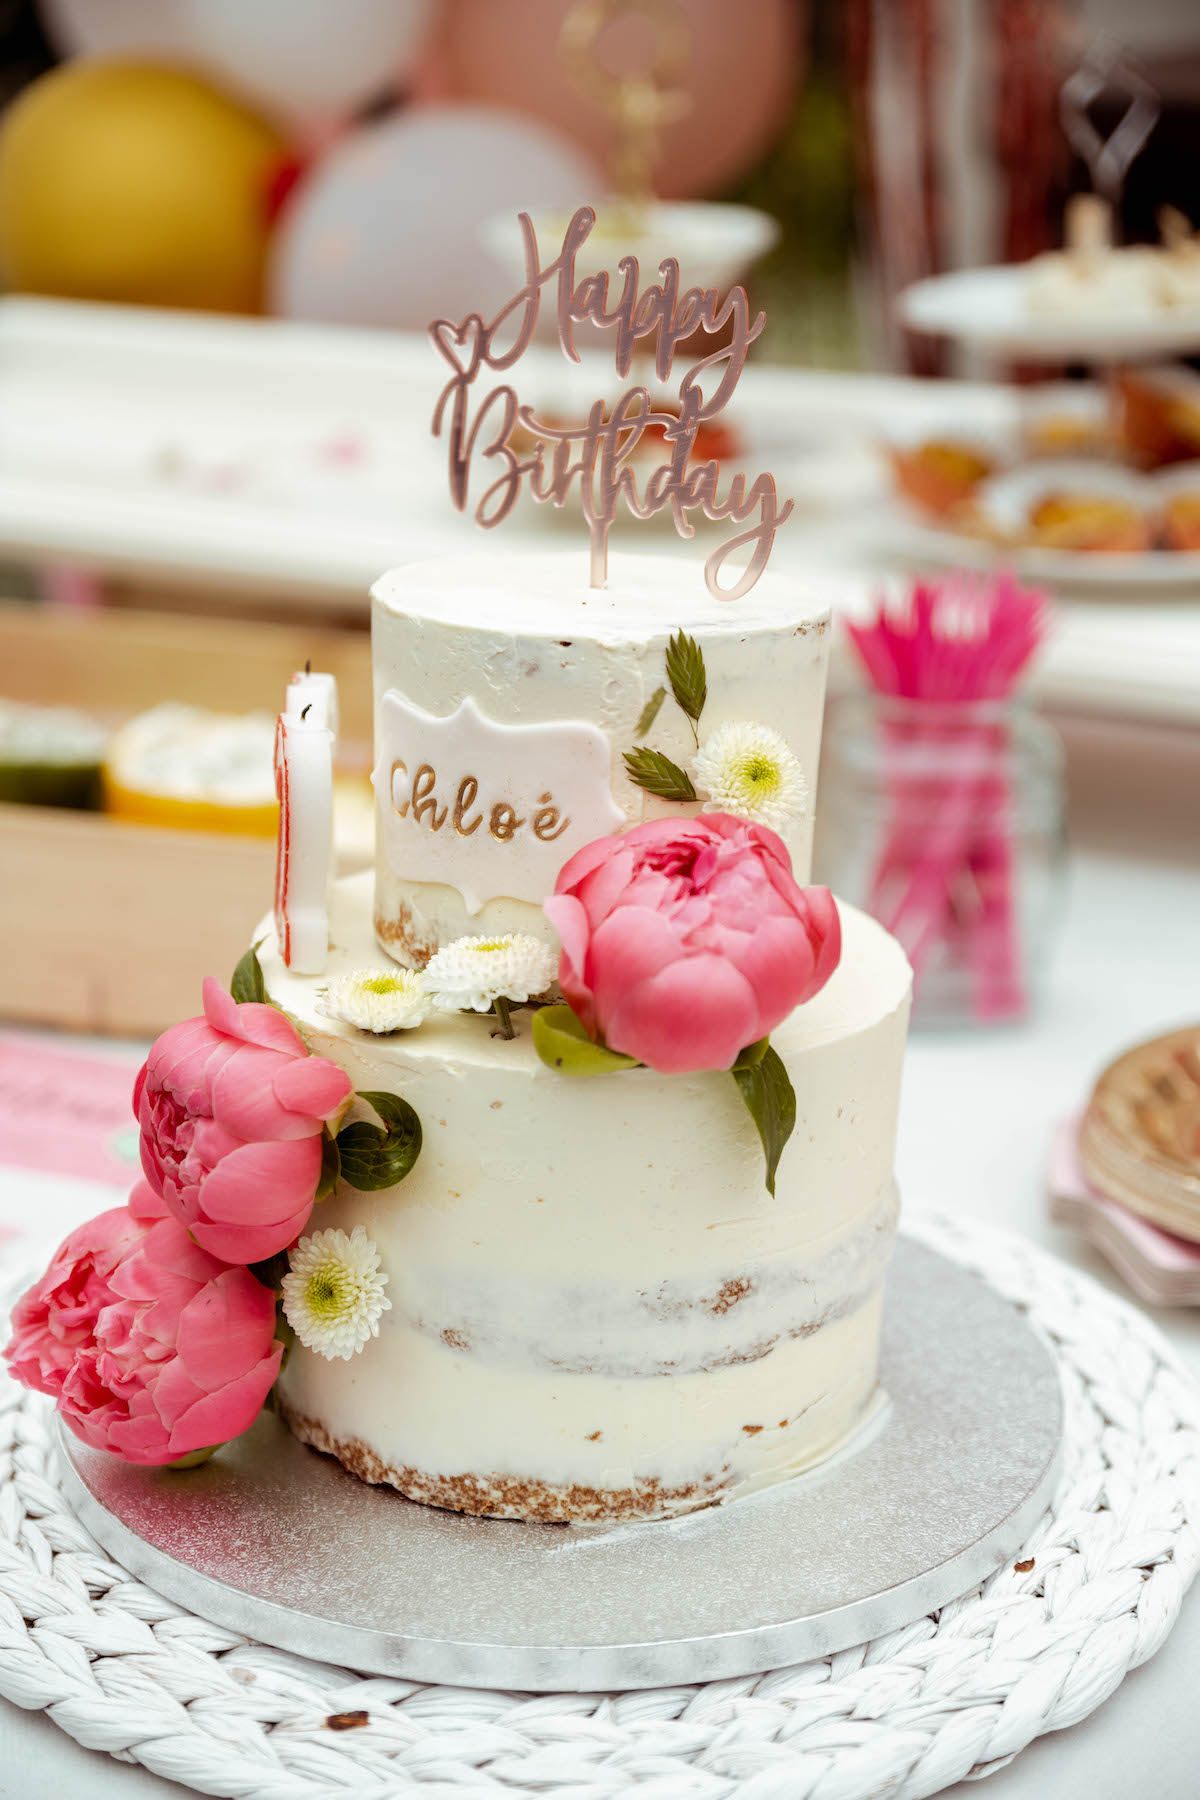 Cake Design Sweet and nice chloé anniversaire